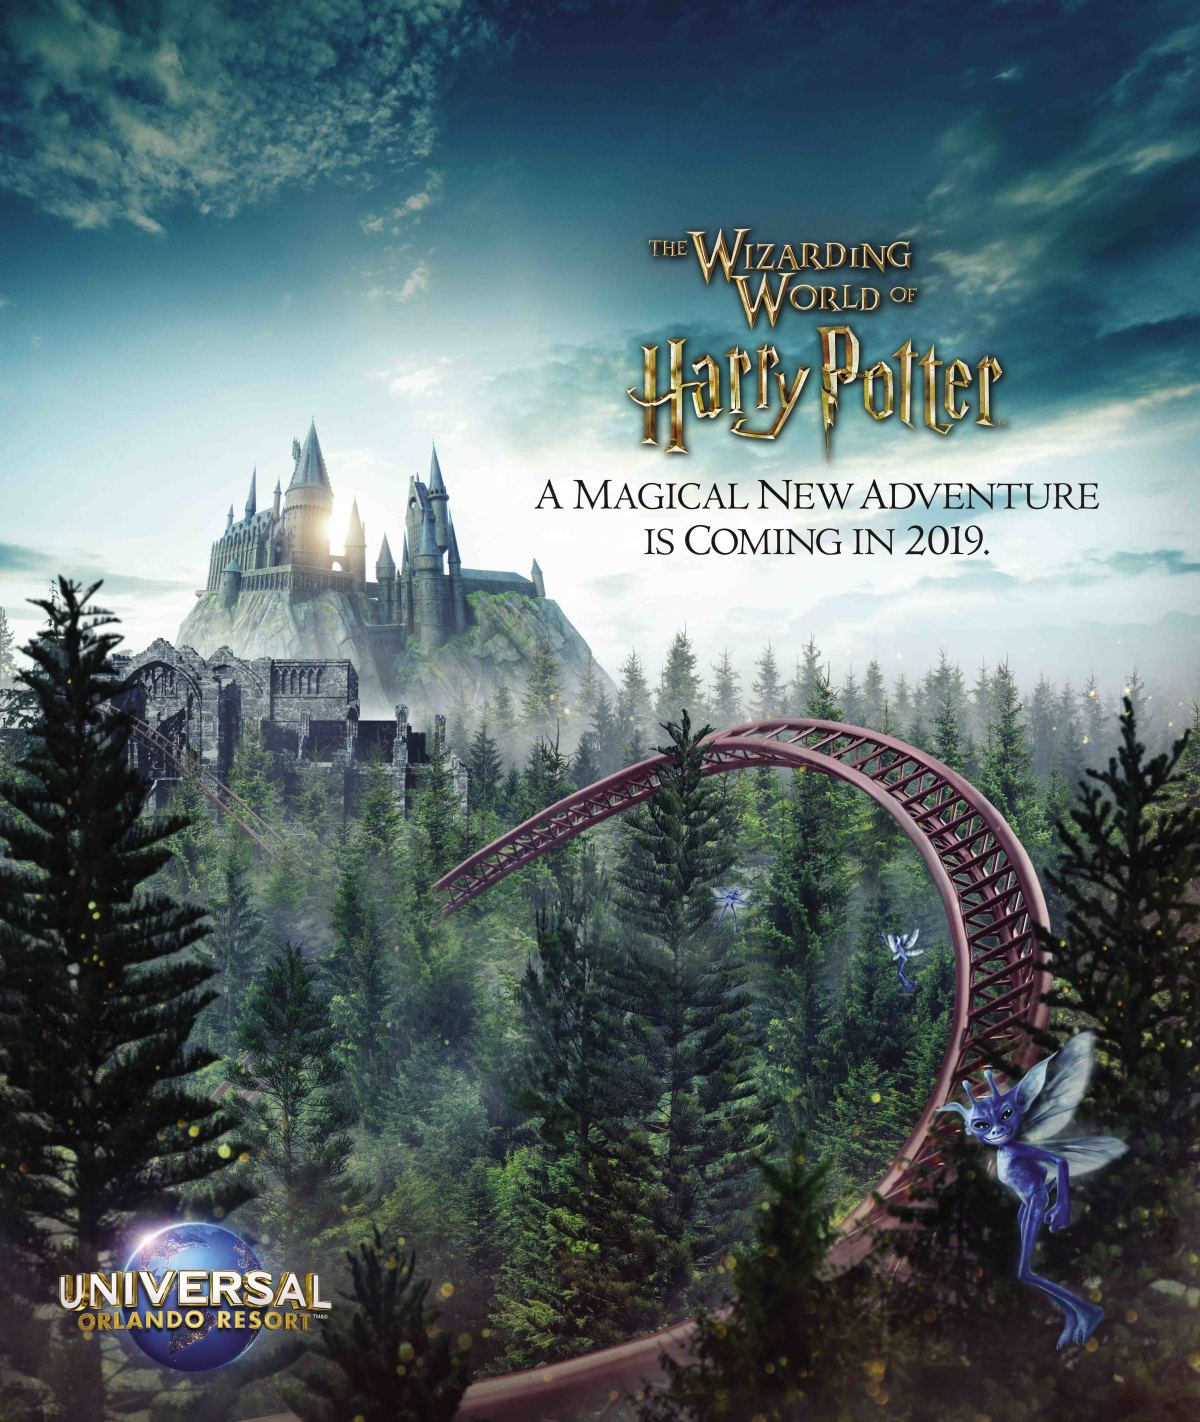 First look at Universal Orlando's new Wizarding World of Harry